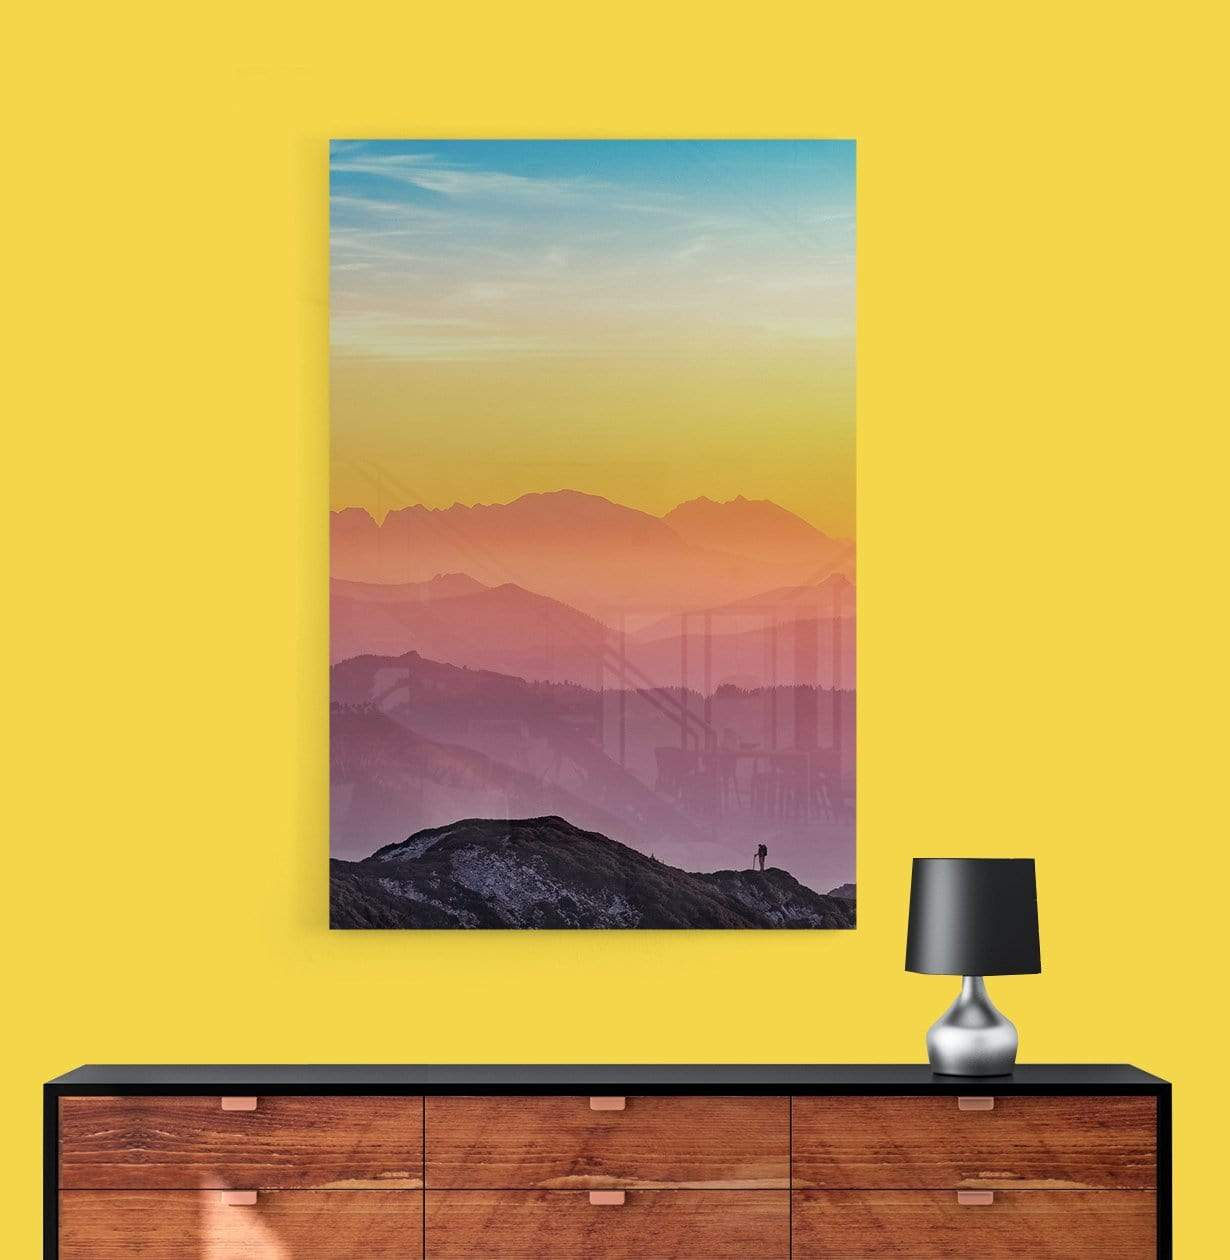 Acrylic Prints: Custom Acrylic Wall Art & Acrylic Photos by Posterjack